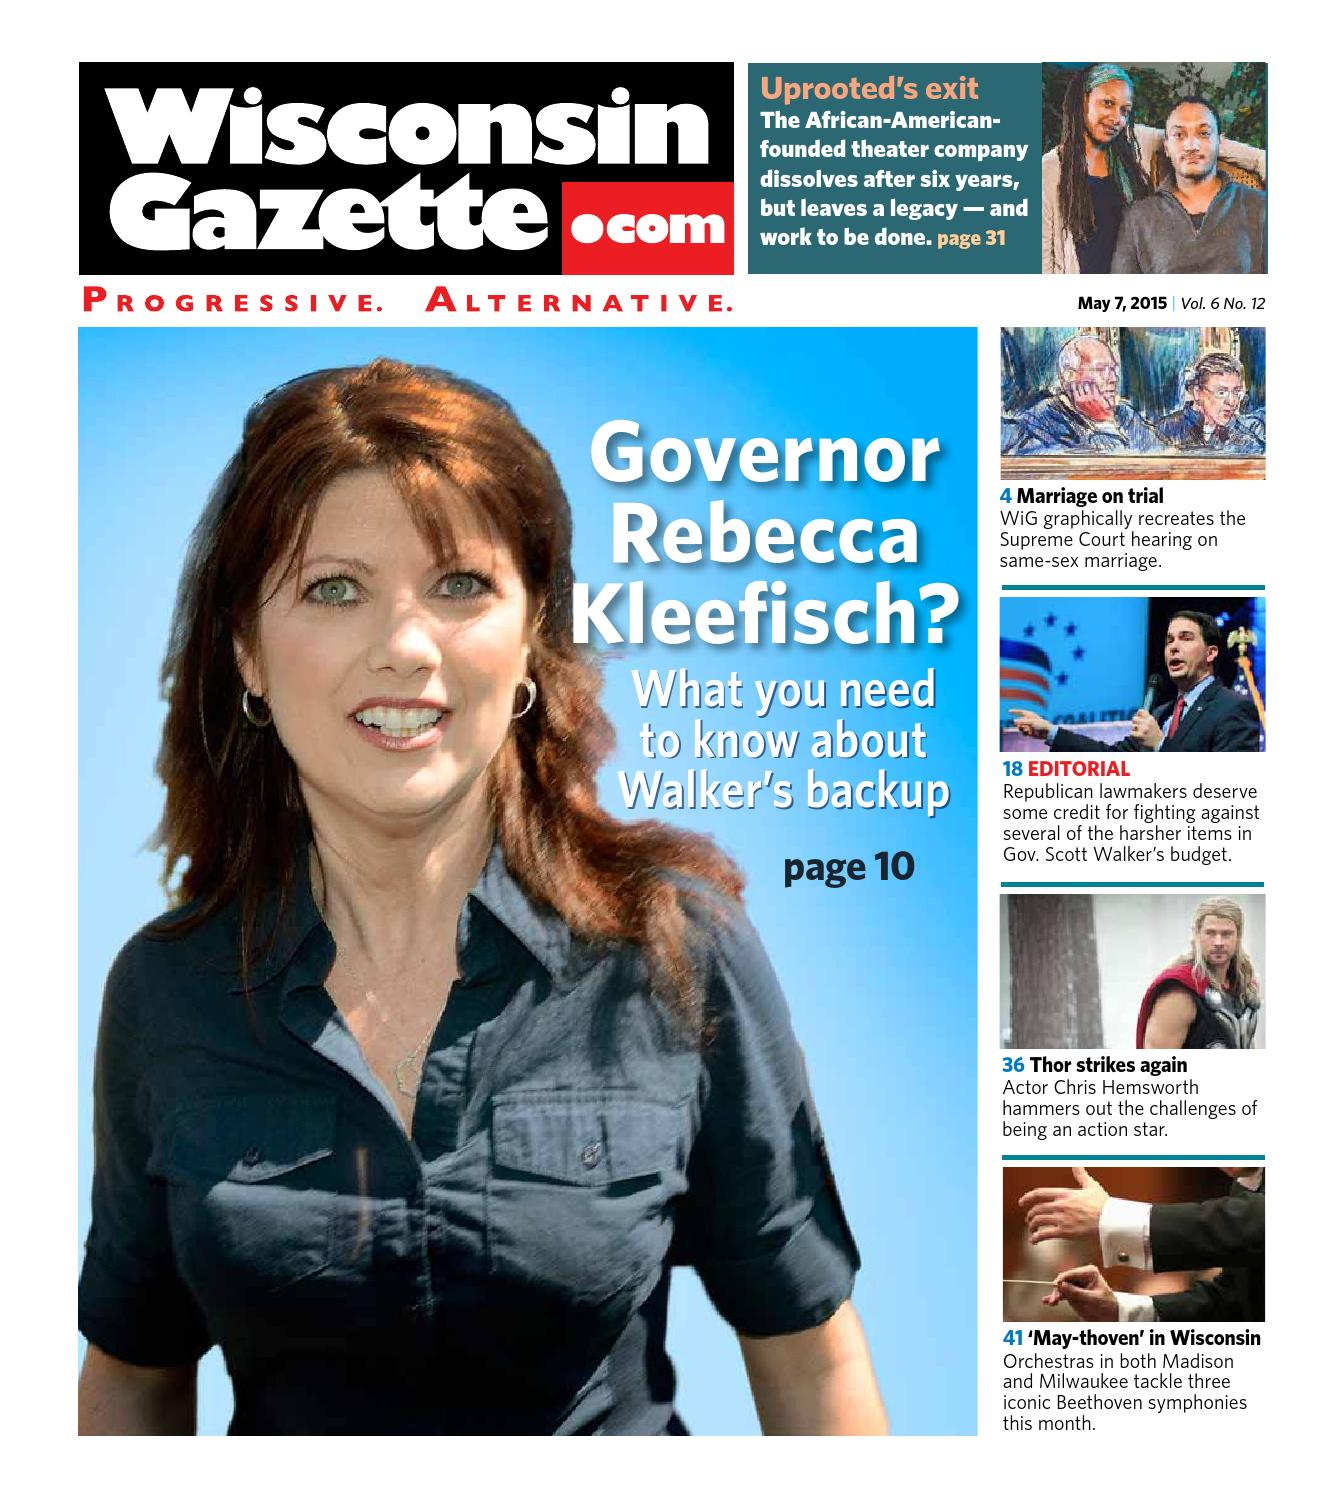 Wisconsin Gazette - May 7, 2015 by Wisconsin Gazette - issuu